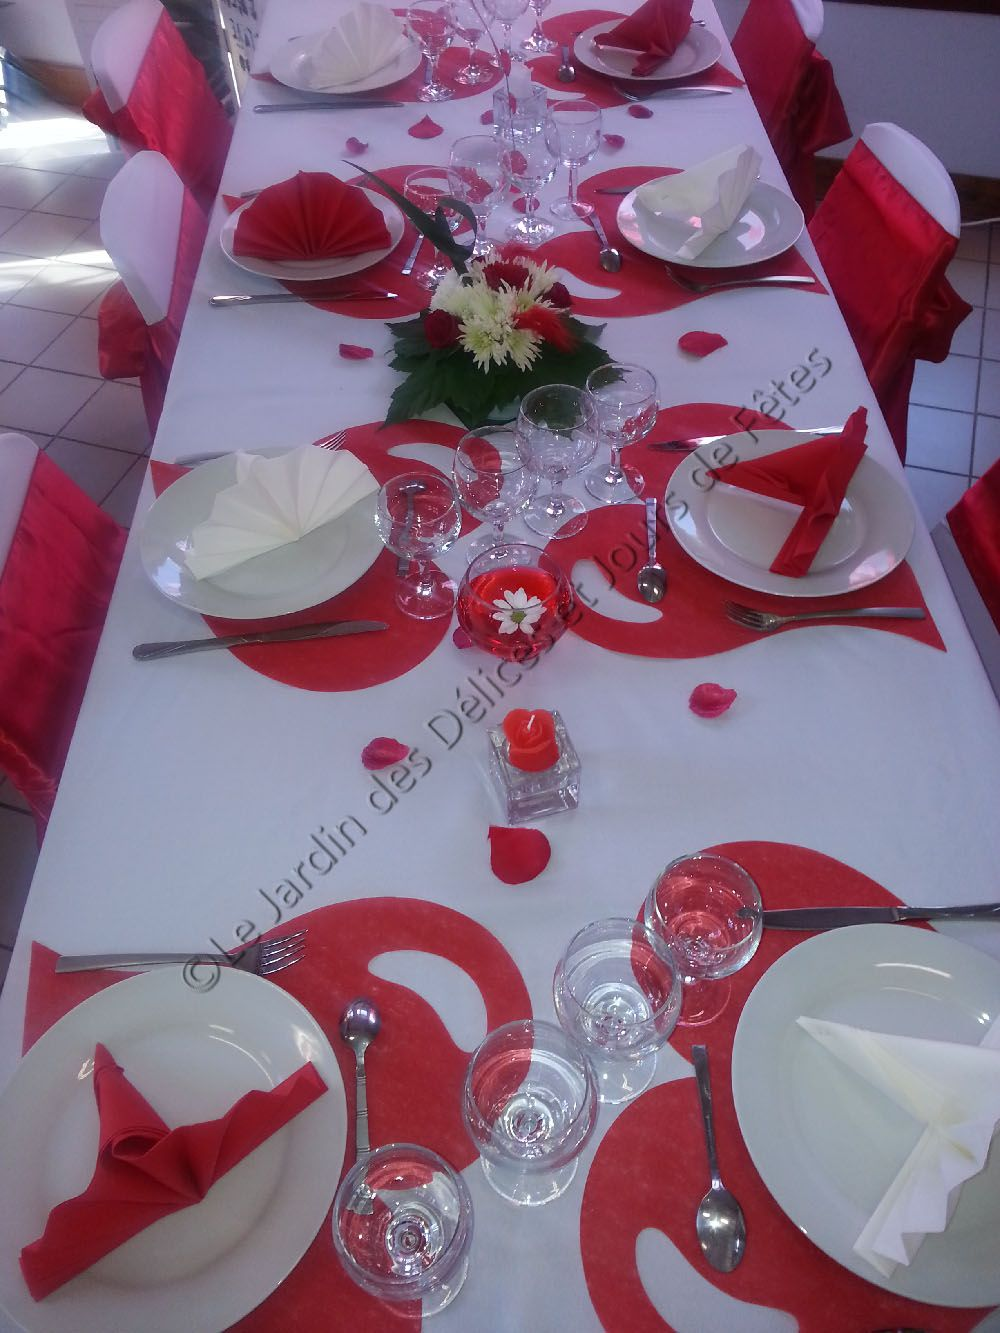 d coration table en rouge et blanc 60 ans de mariage. Black Bedroom Furniture Sets. Home Design Ideas